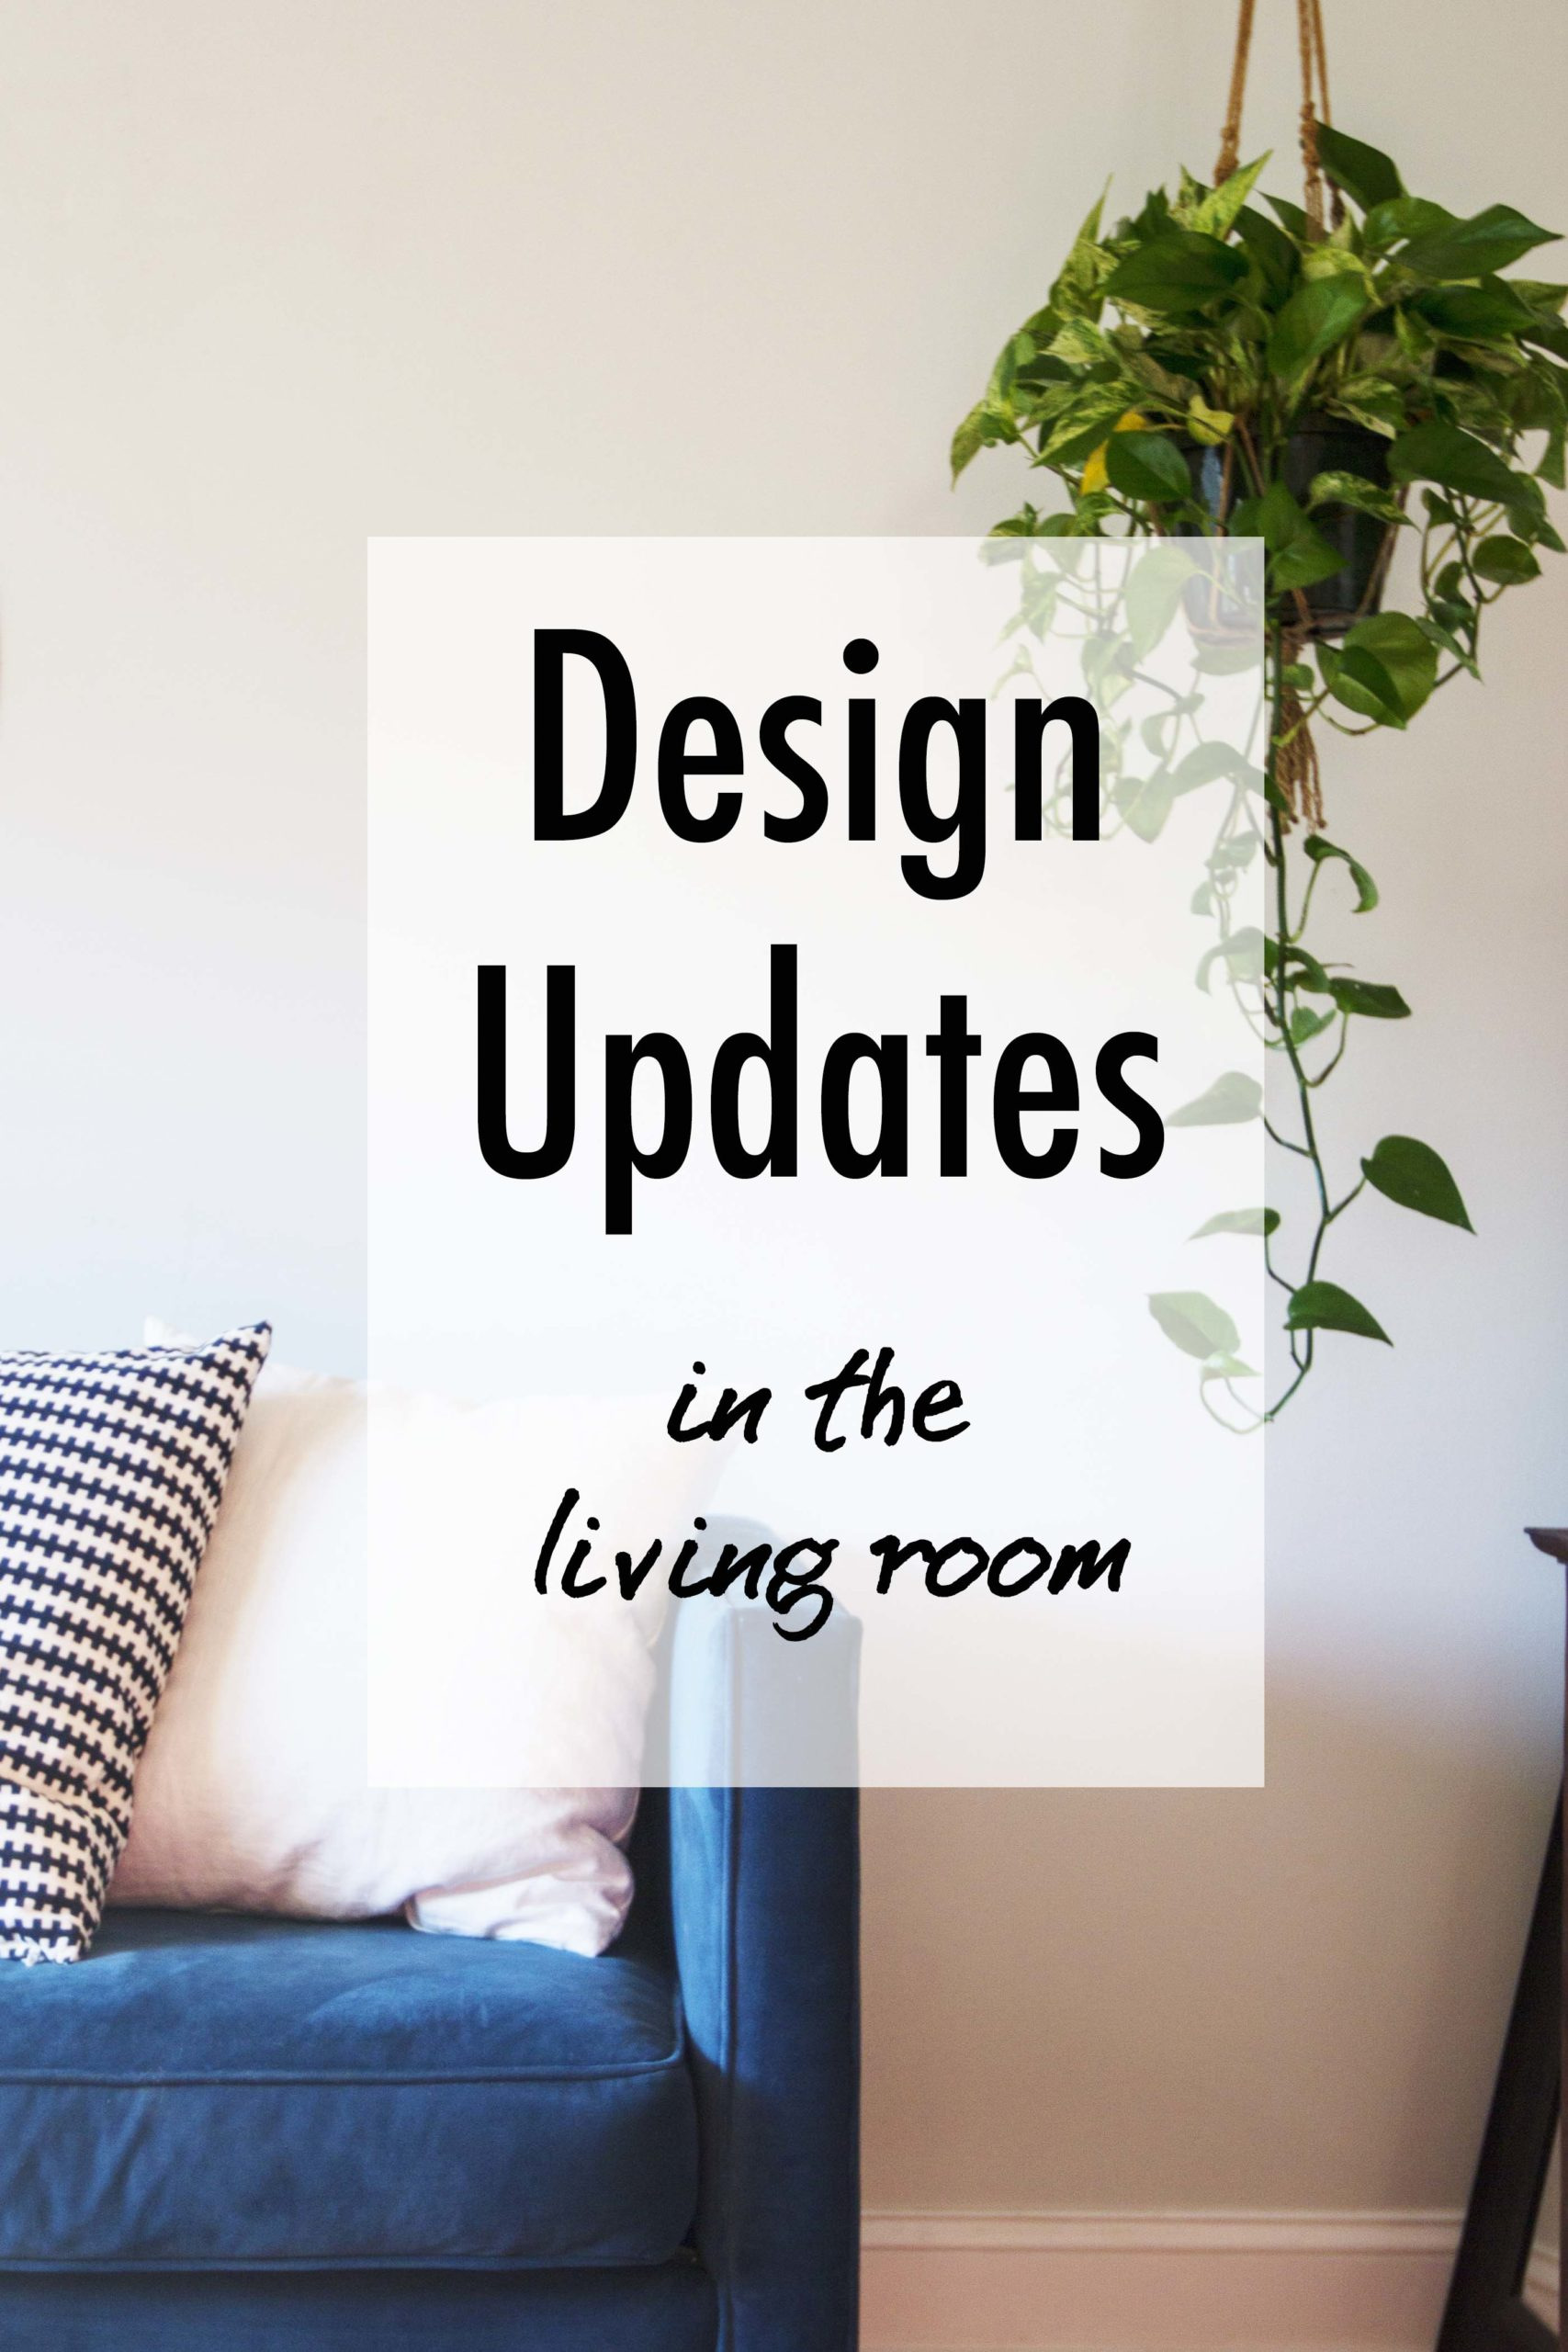 Design Updates in the Living Room